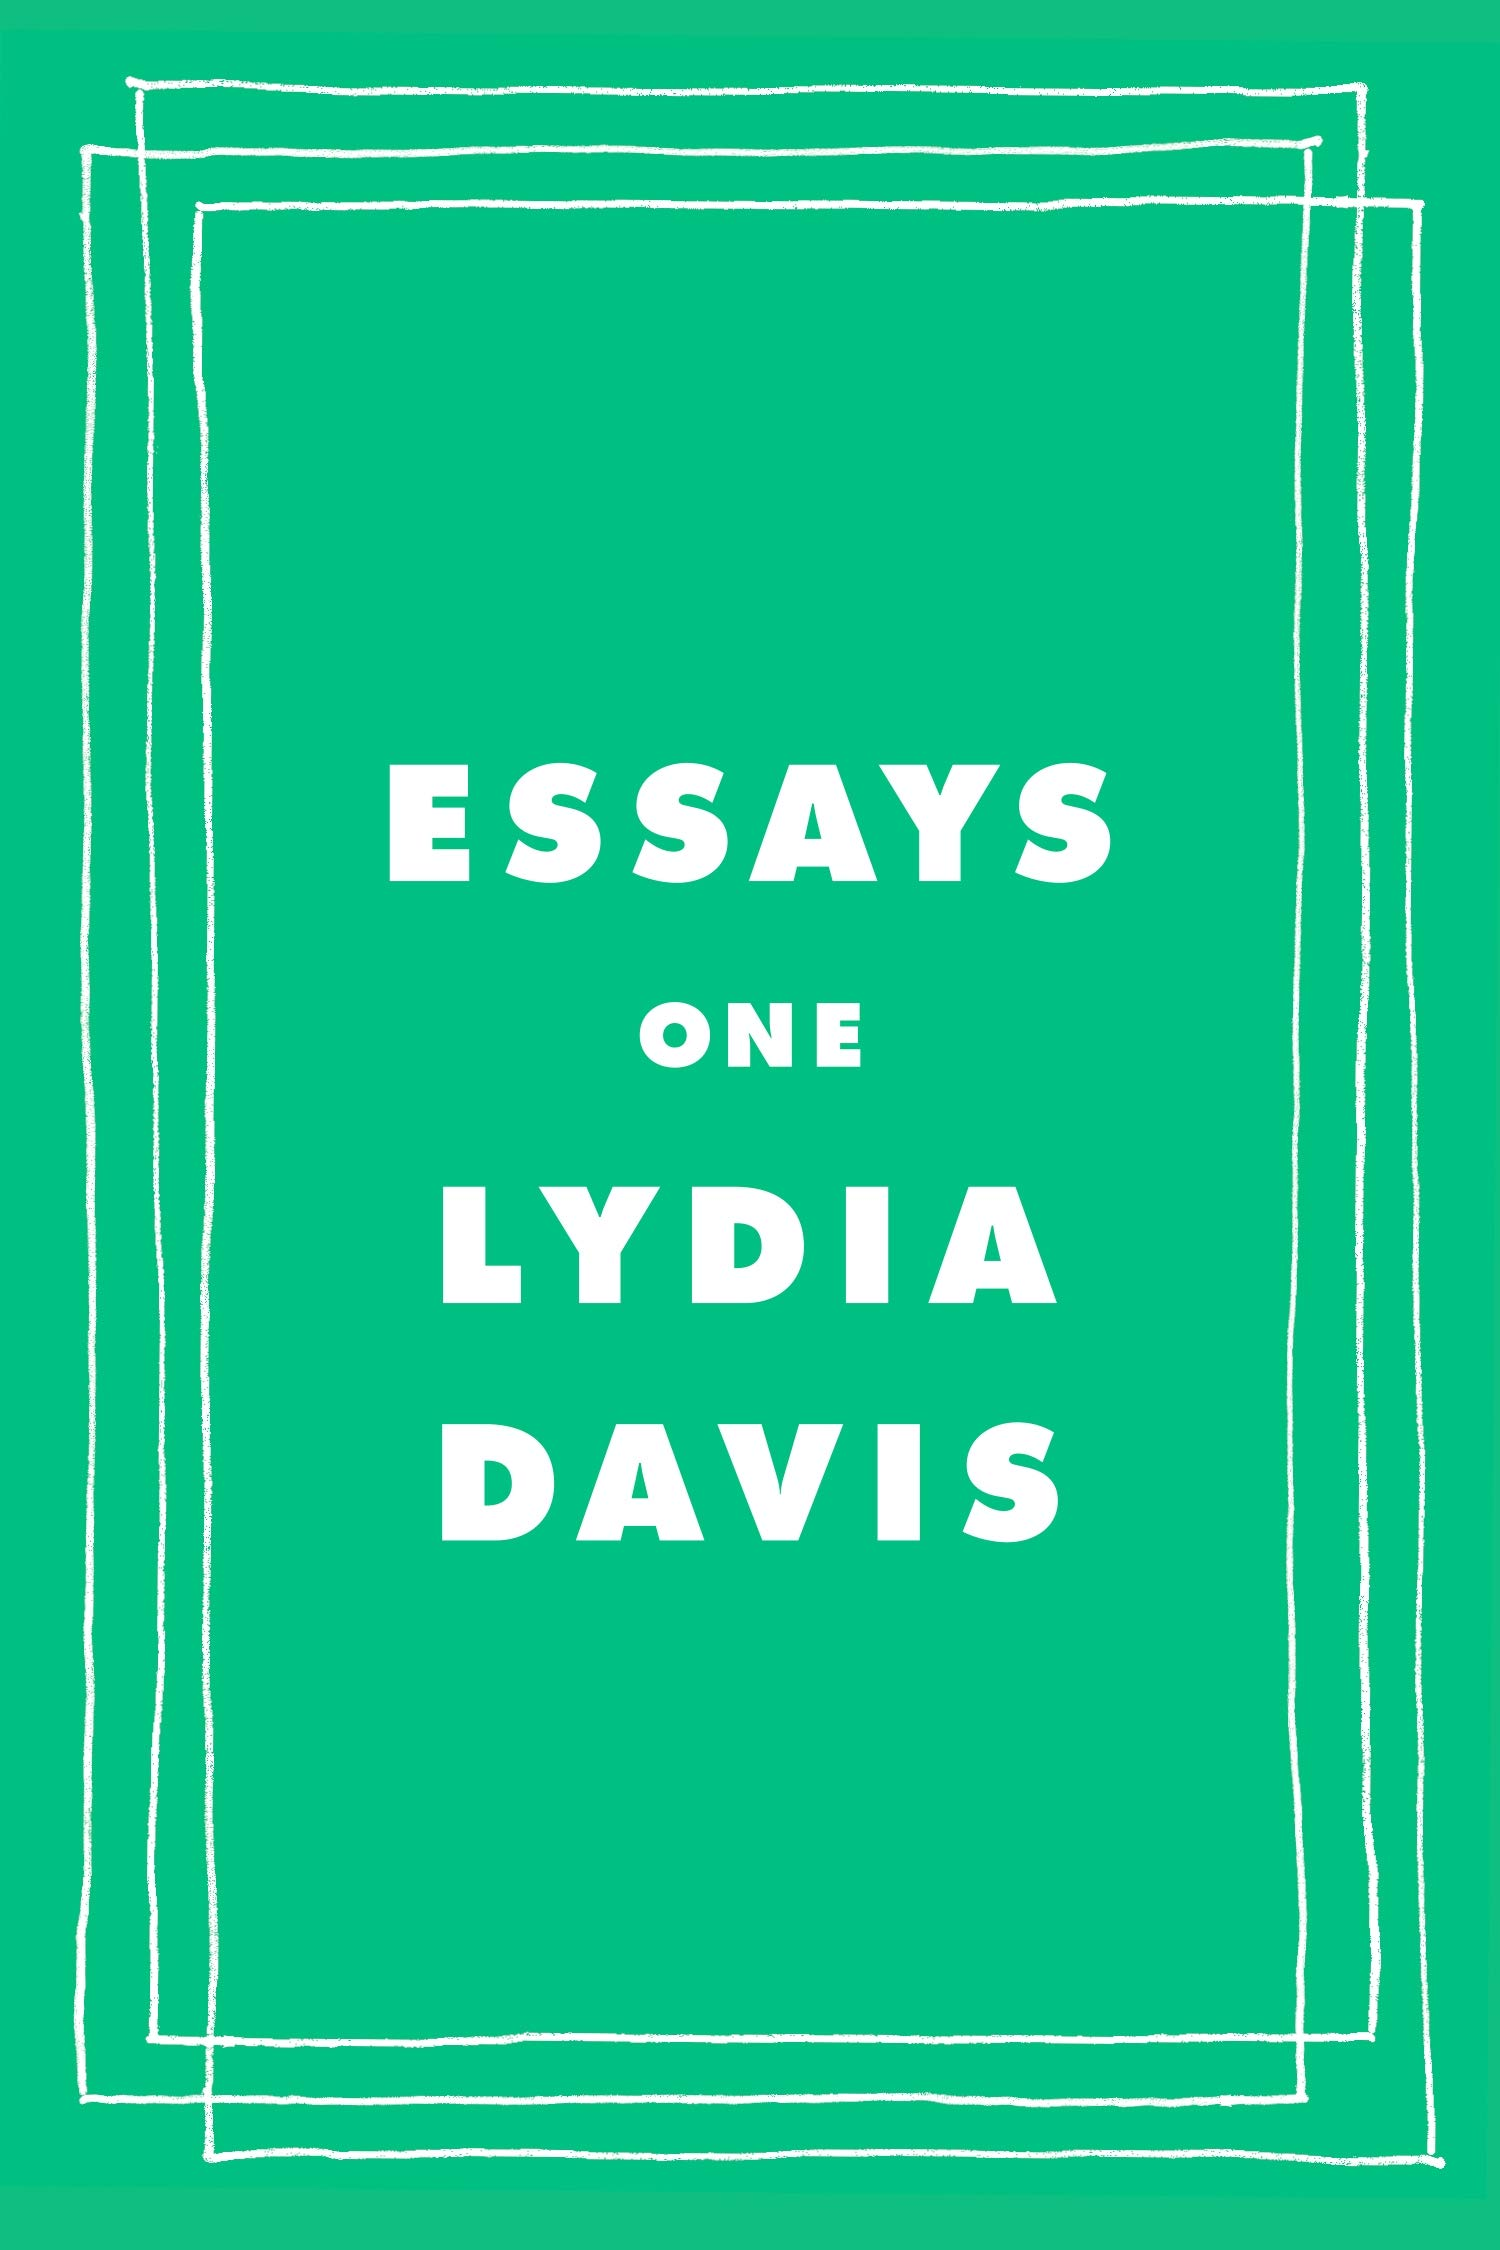 Billedresultat for lydia davis essays